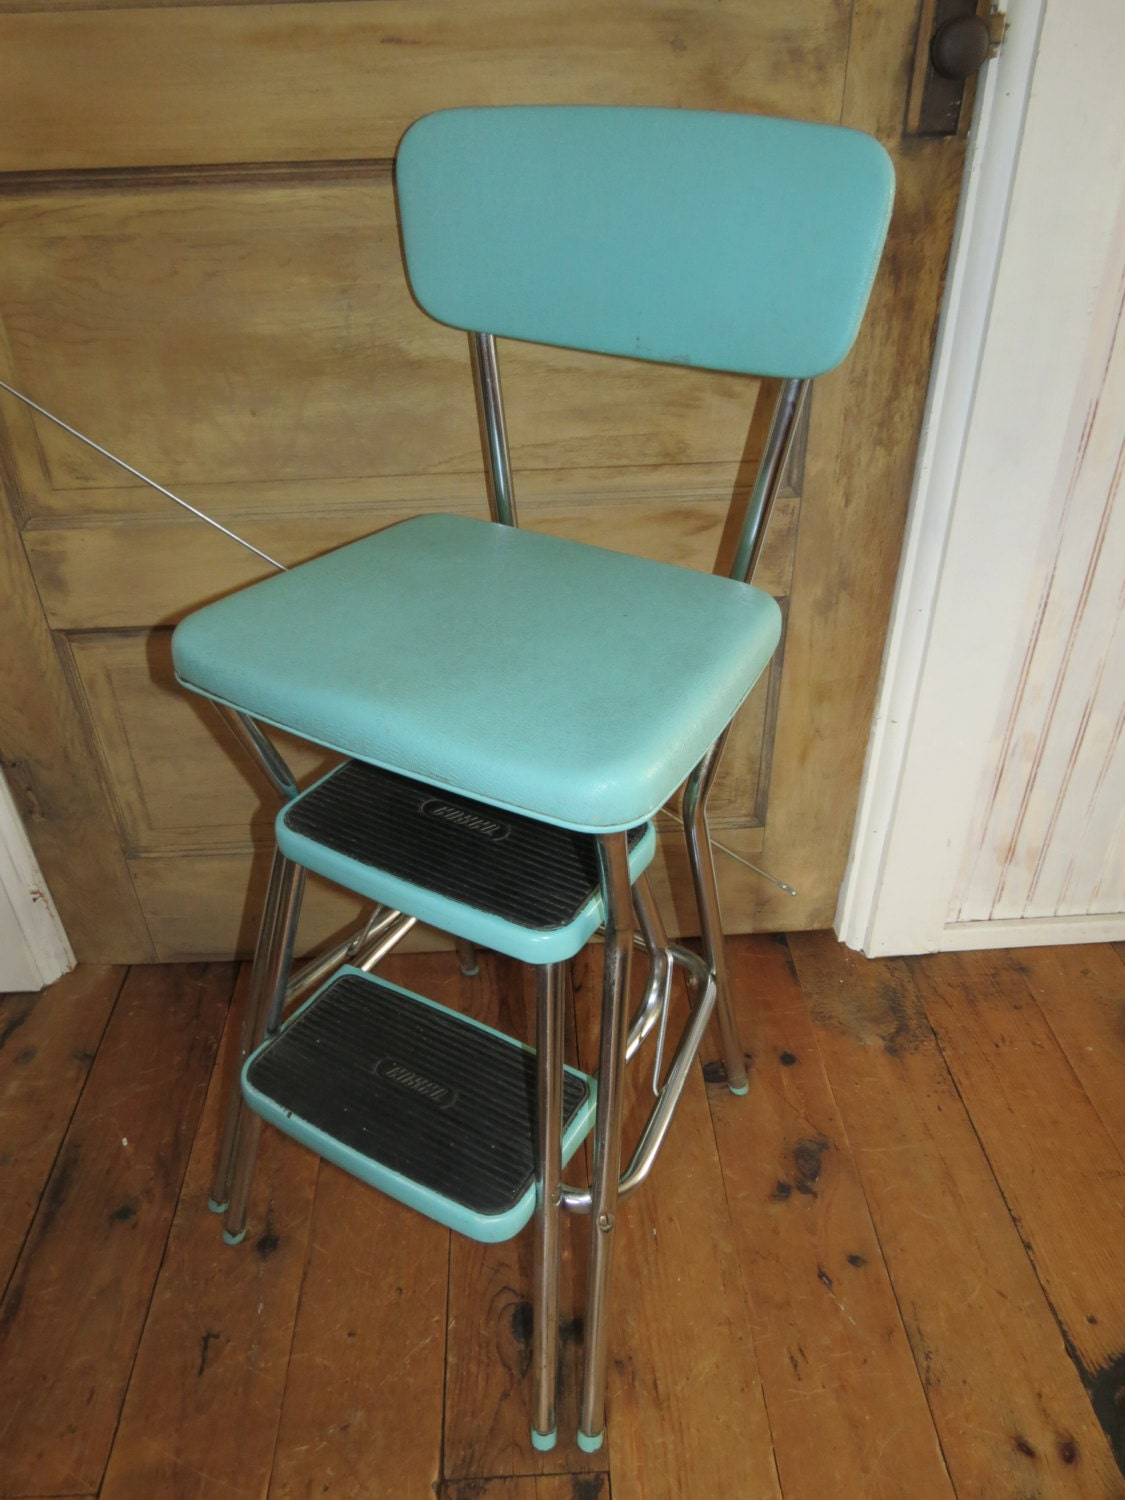 Vintage Cosco Step Stool Chair : ilfullxfull431874927mlh3 from www.etsy.com size 1125 x 1500 jpeg 257kB